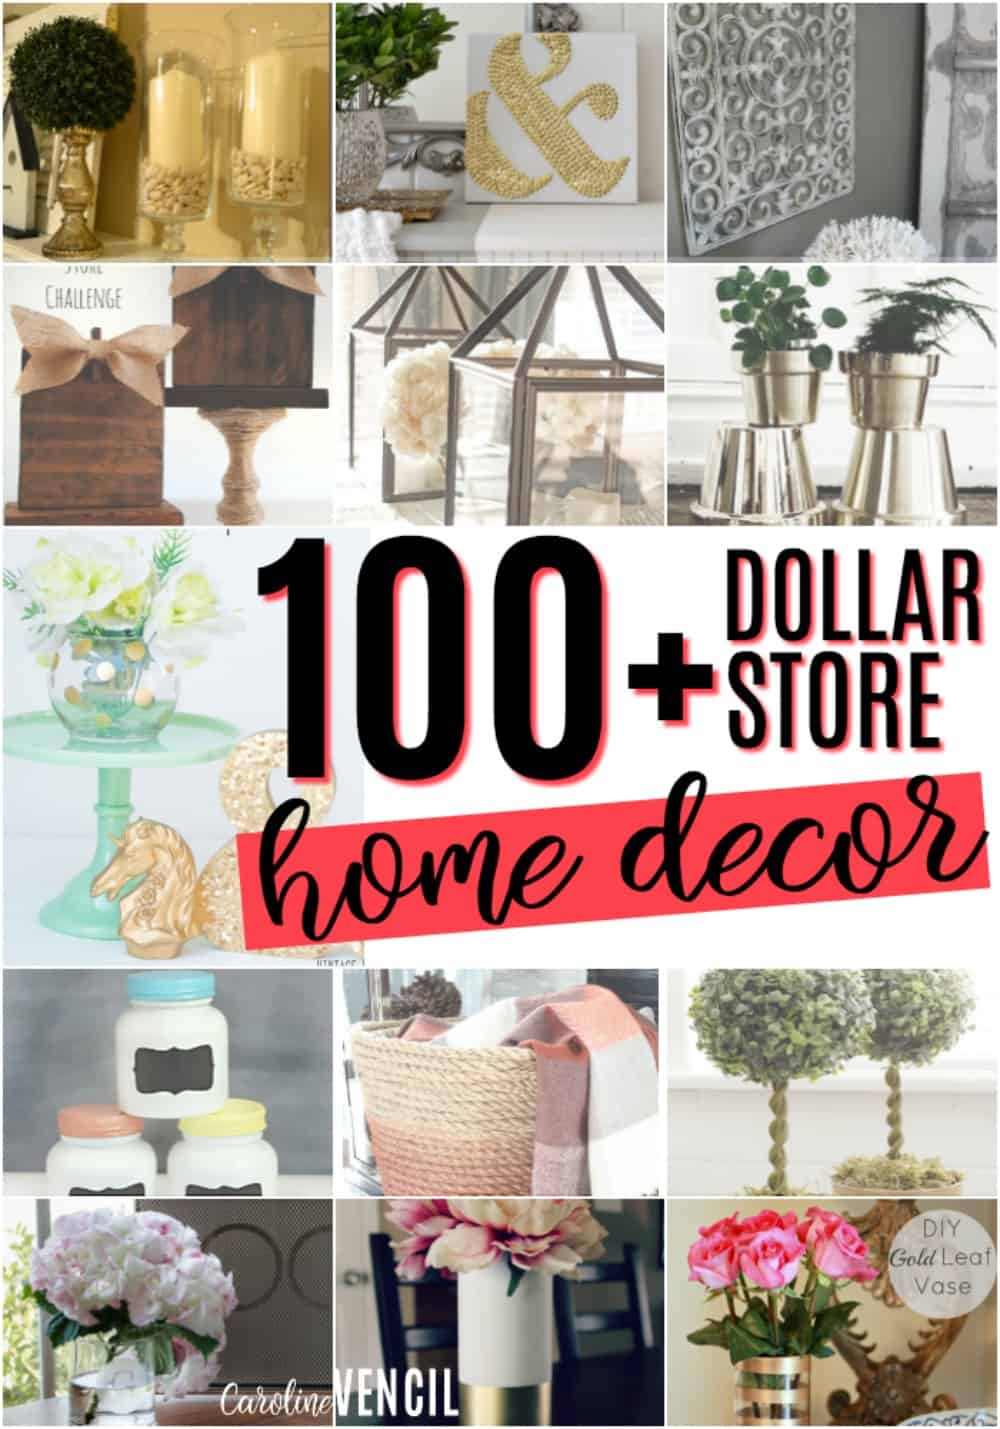 Awesome These Dollar Store Decor Hacks Are THE BEST! Iu0027m So Glad I Found